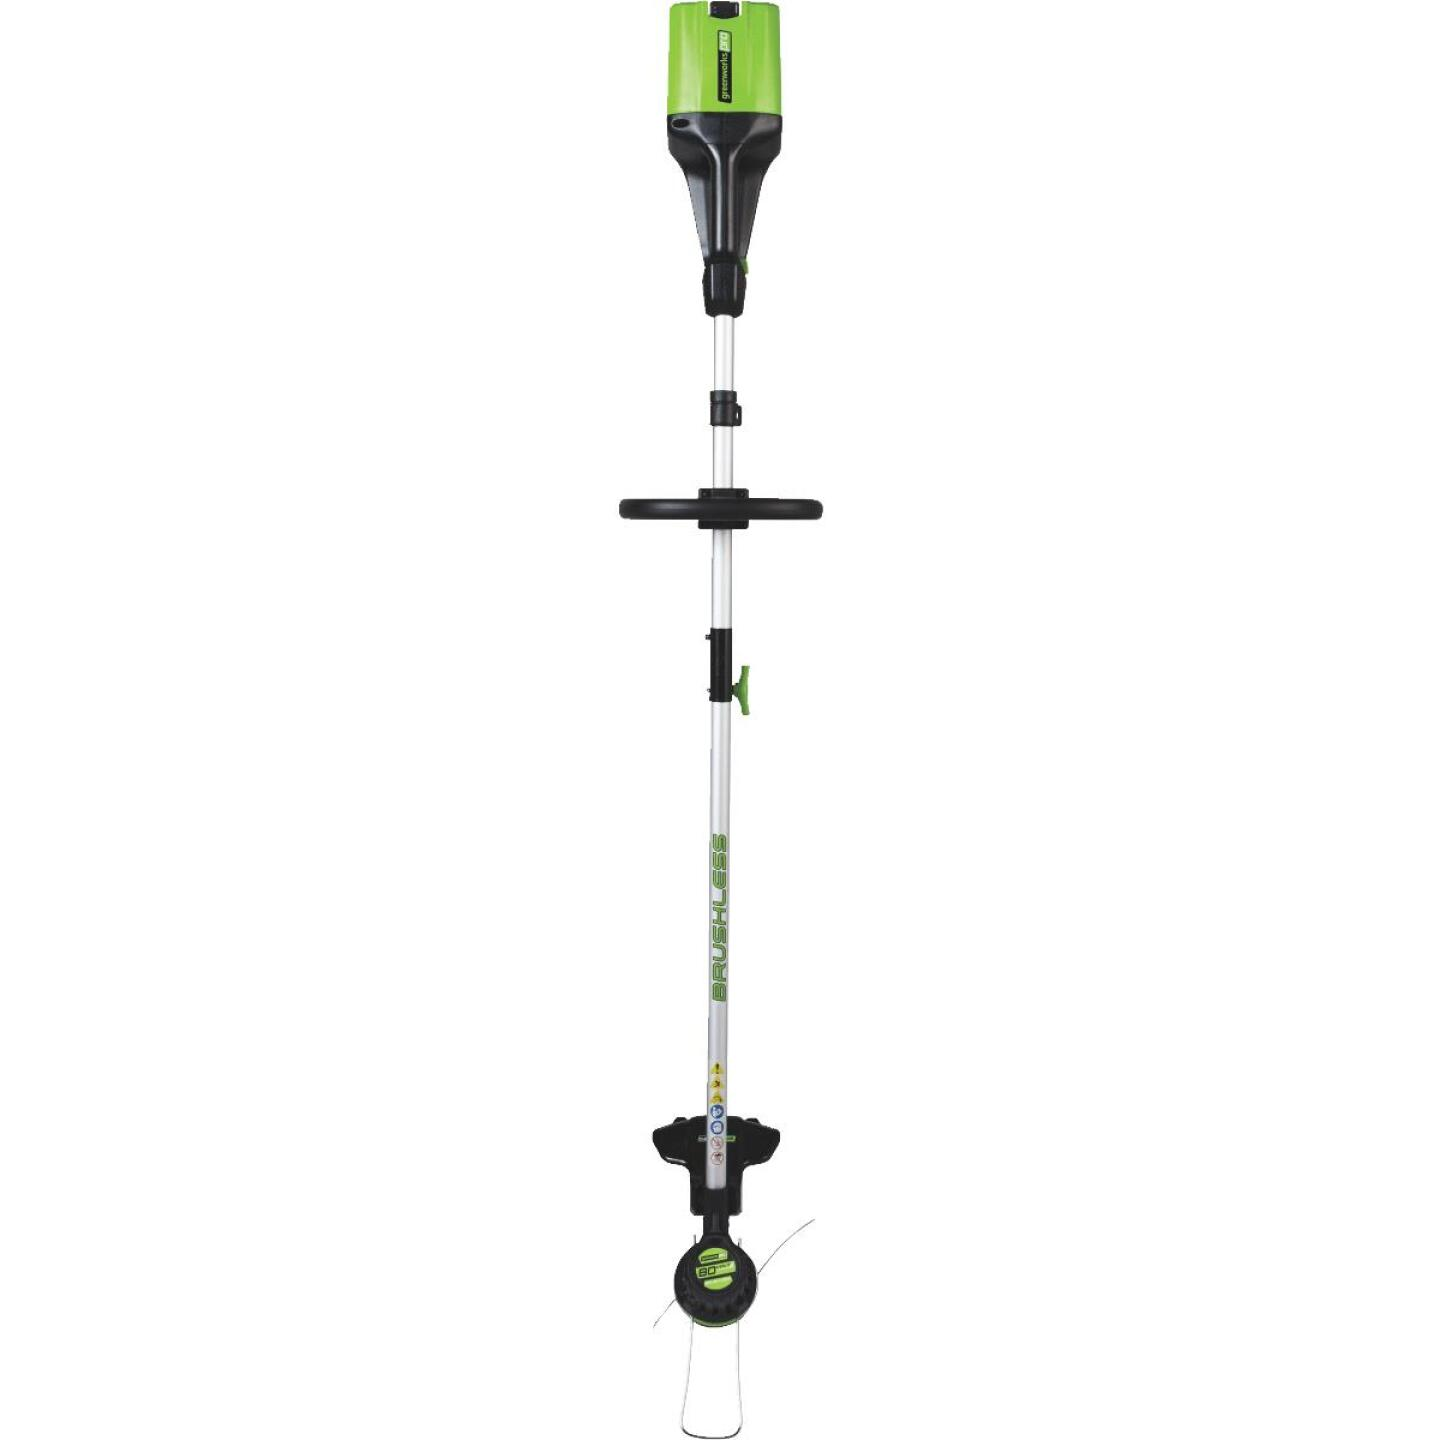 Greenworks Pro 80V 16 In. DigiPro Lithium Ion Straight Cordless String Trimmer Image 3